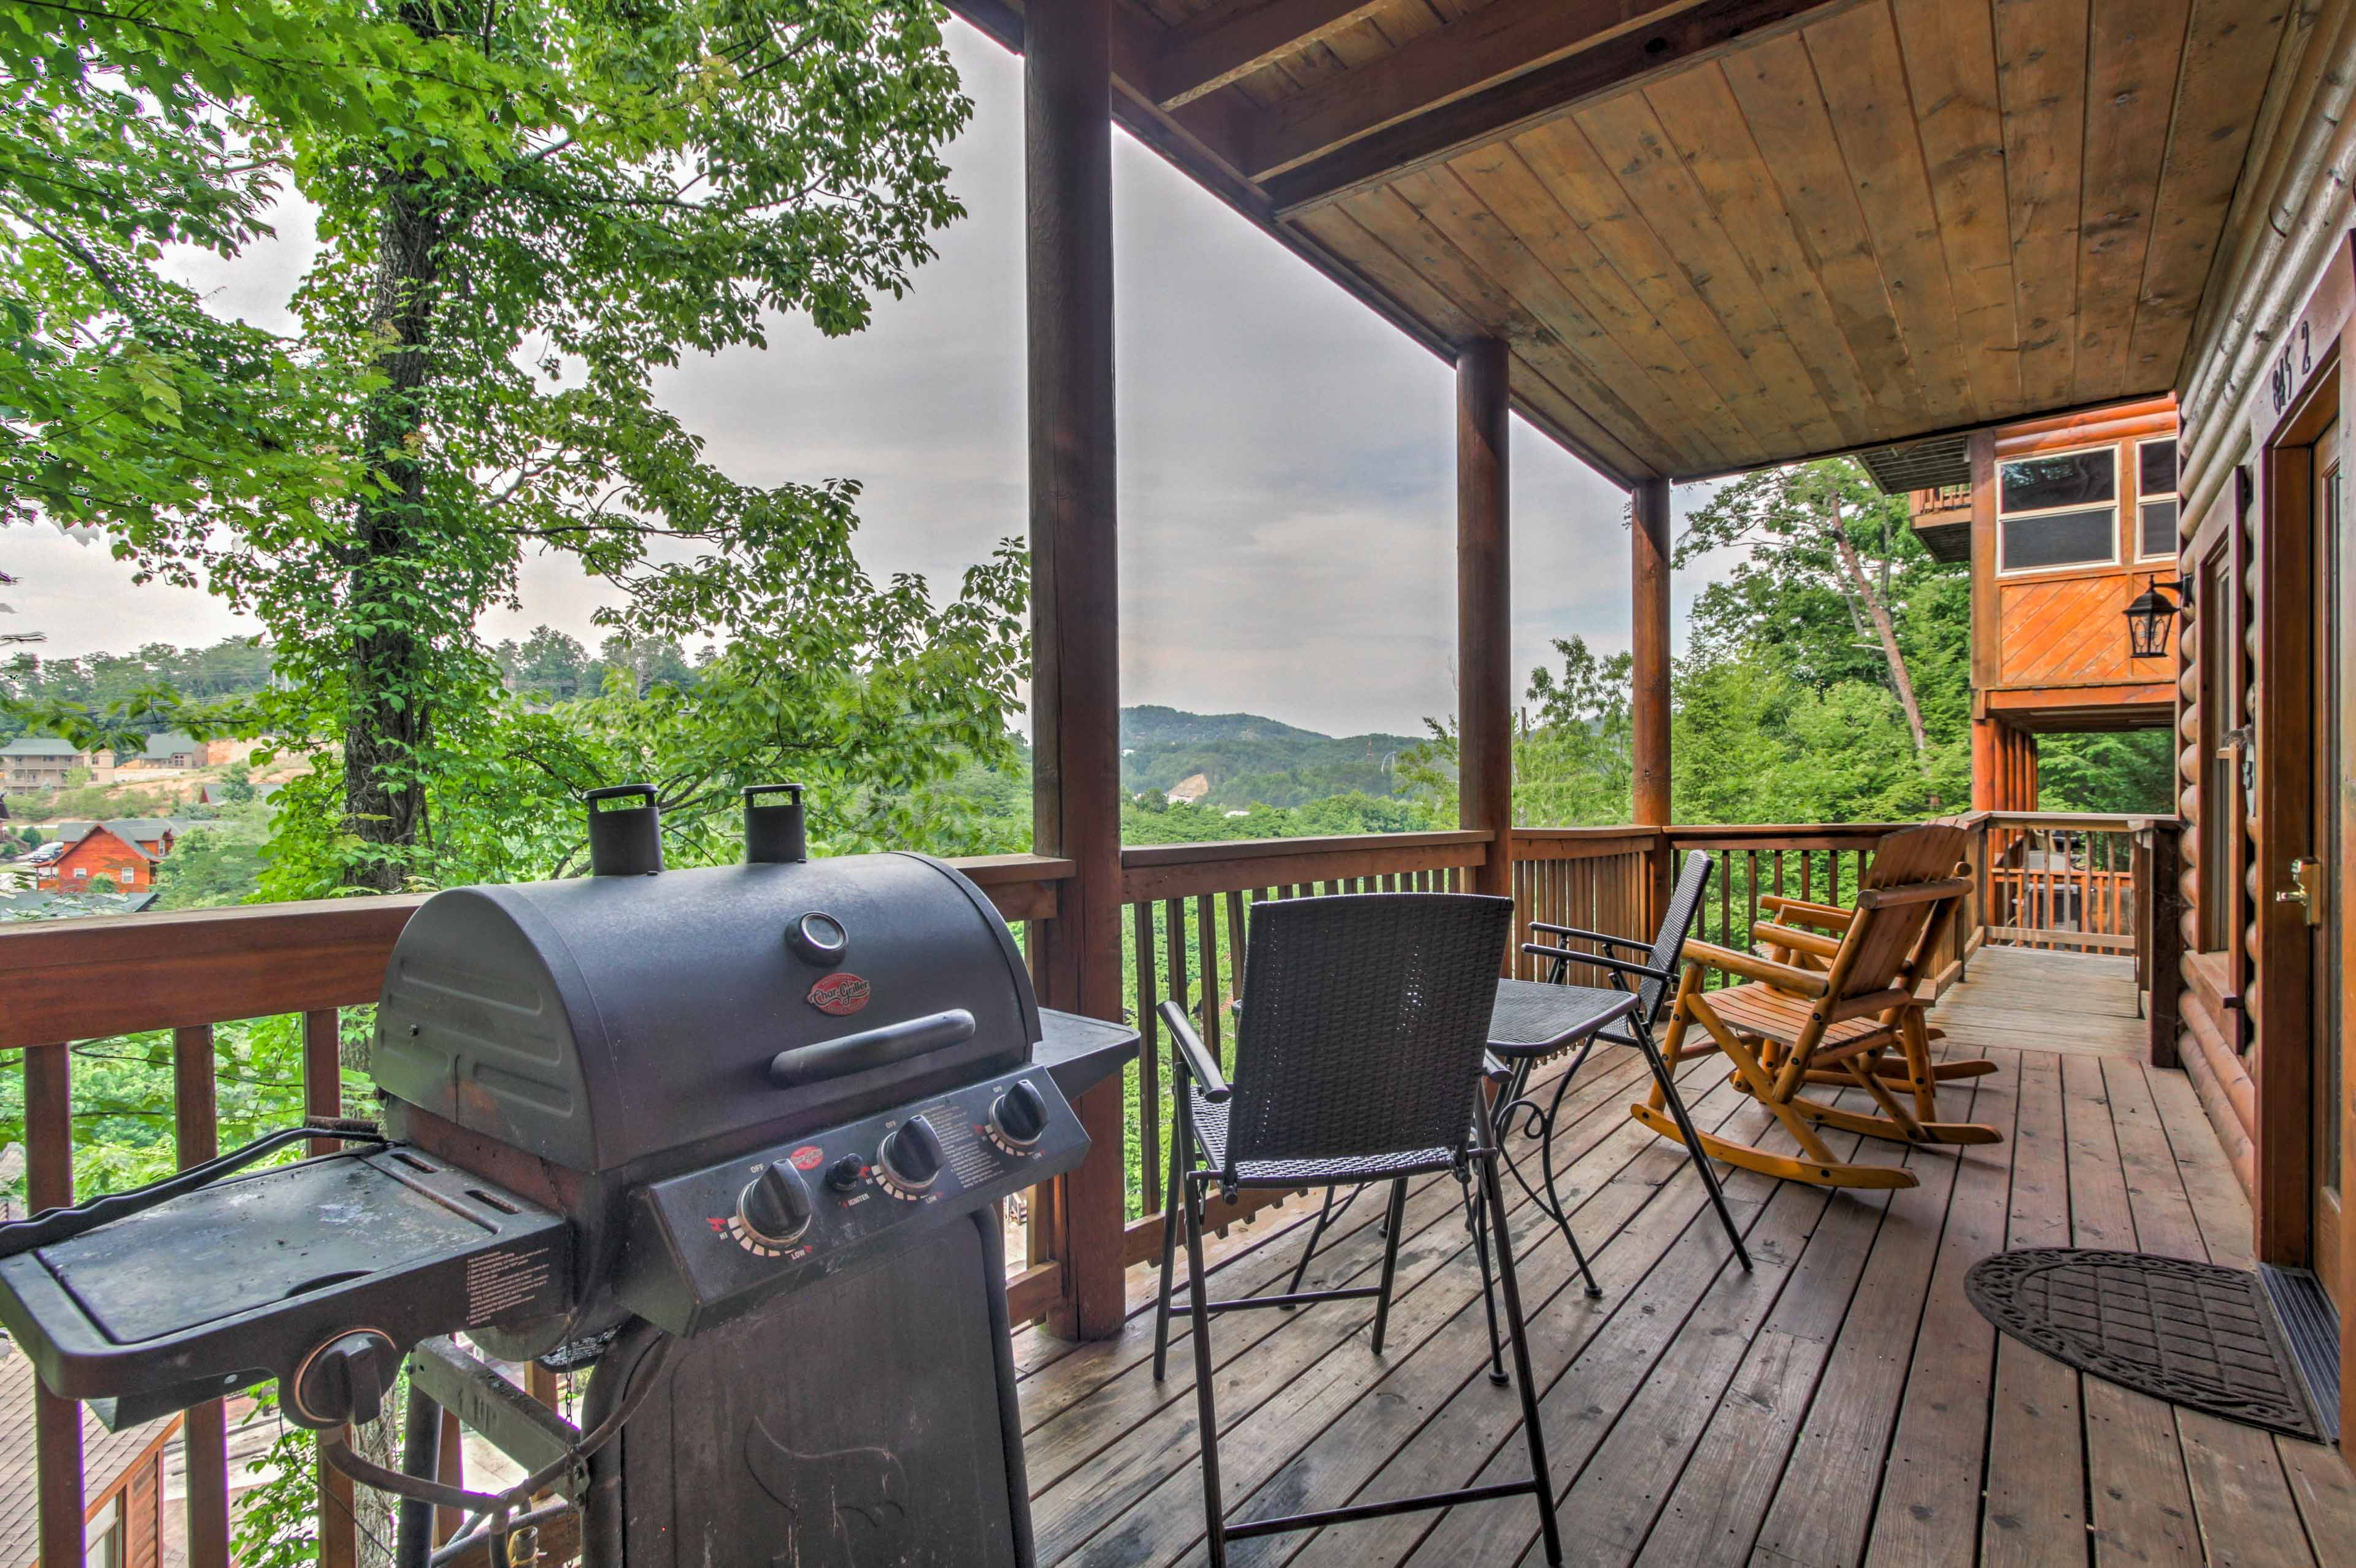 Deck | Grilling Station | Mountain Views